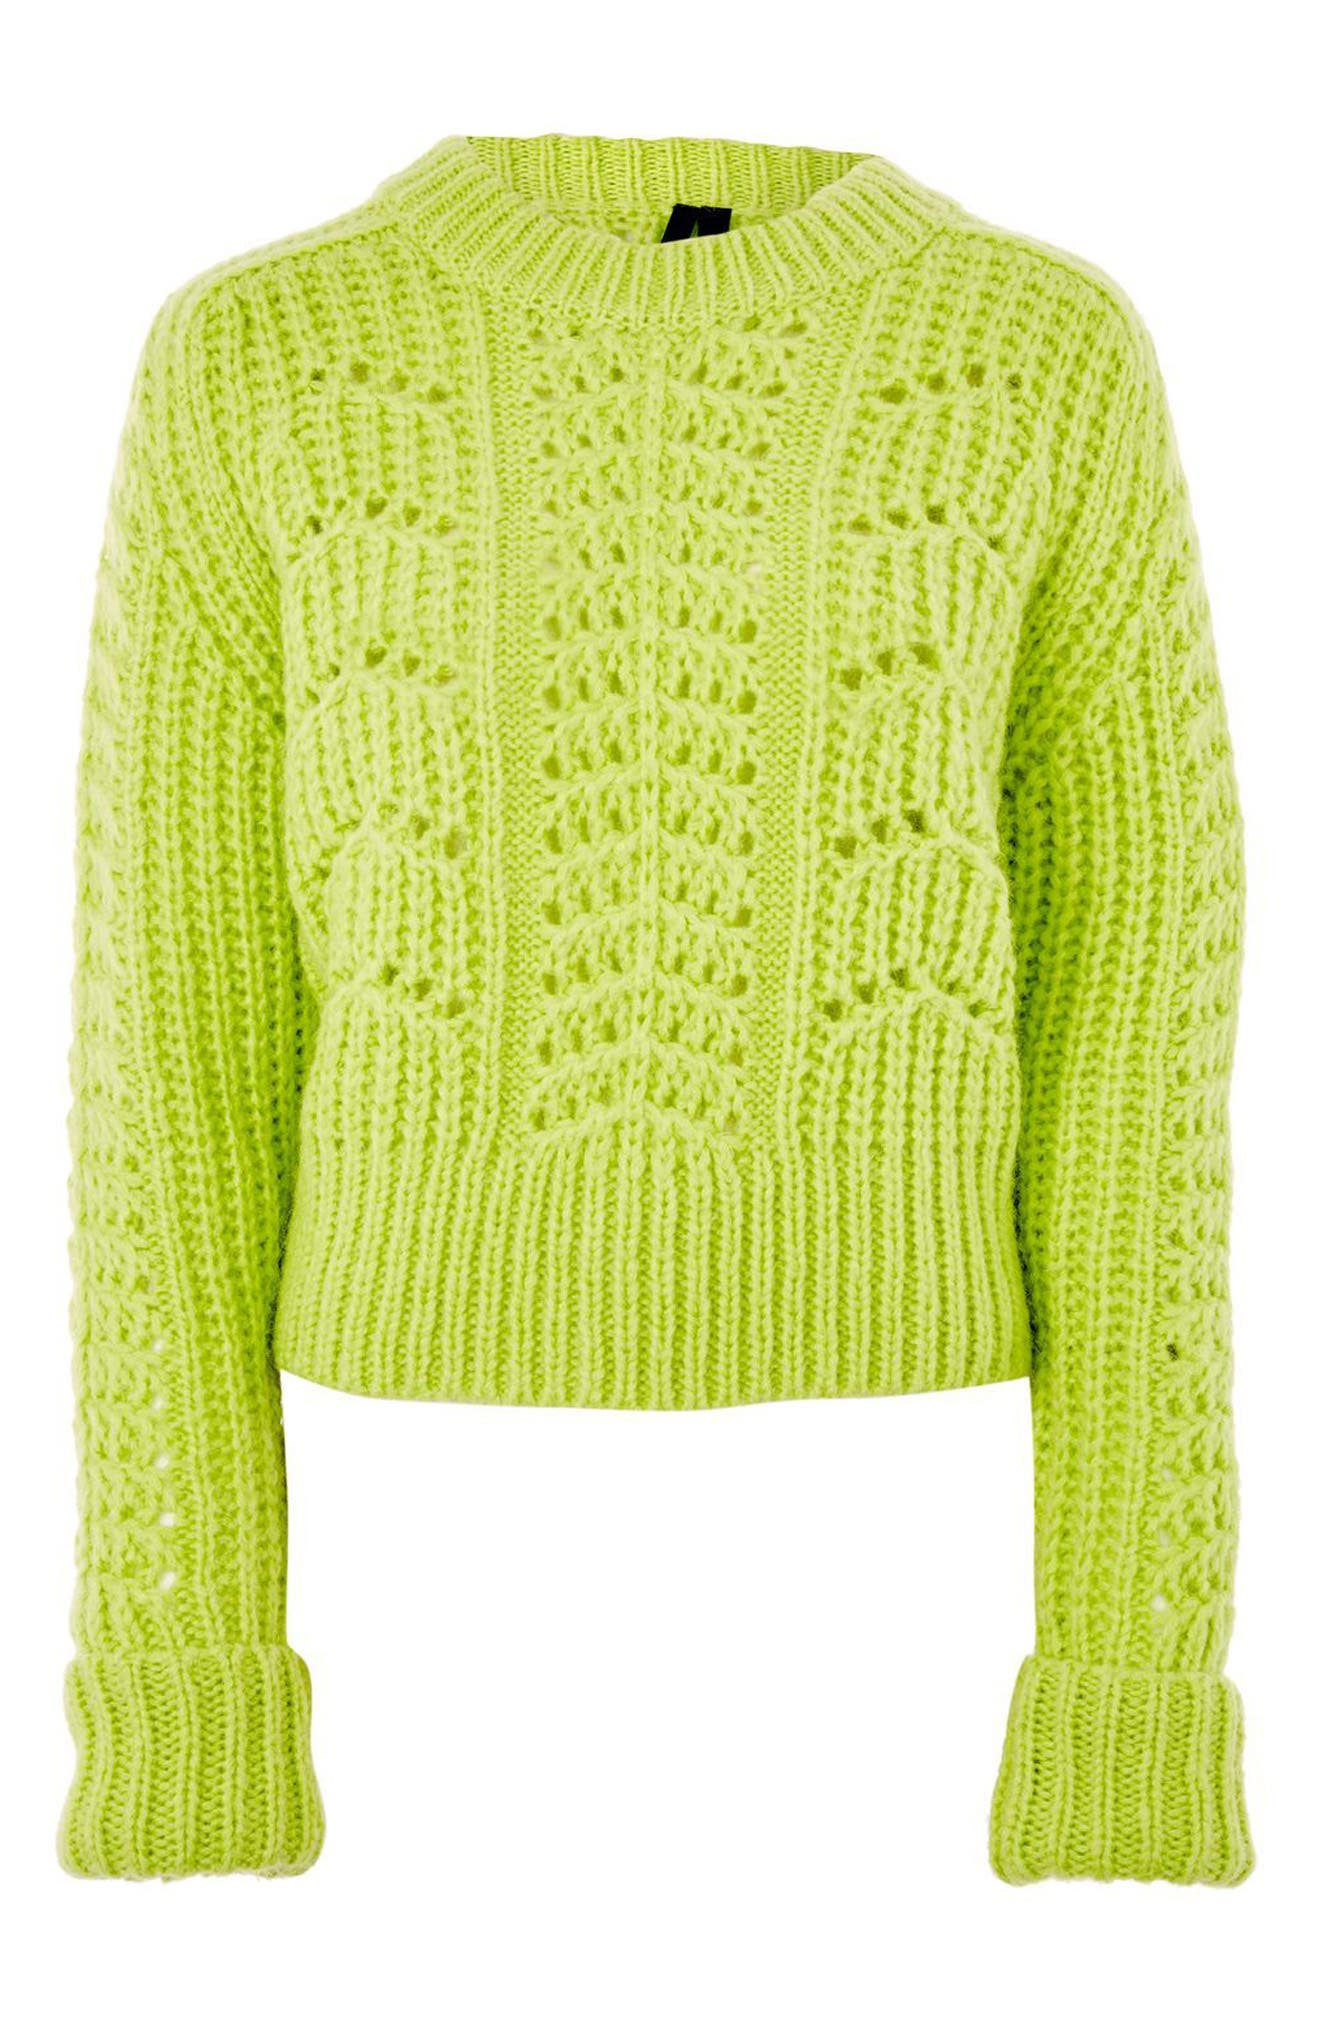 Cable Knit Sweater,                         Main,                         color, Bright Green